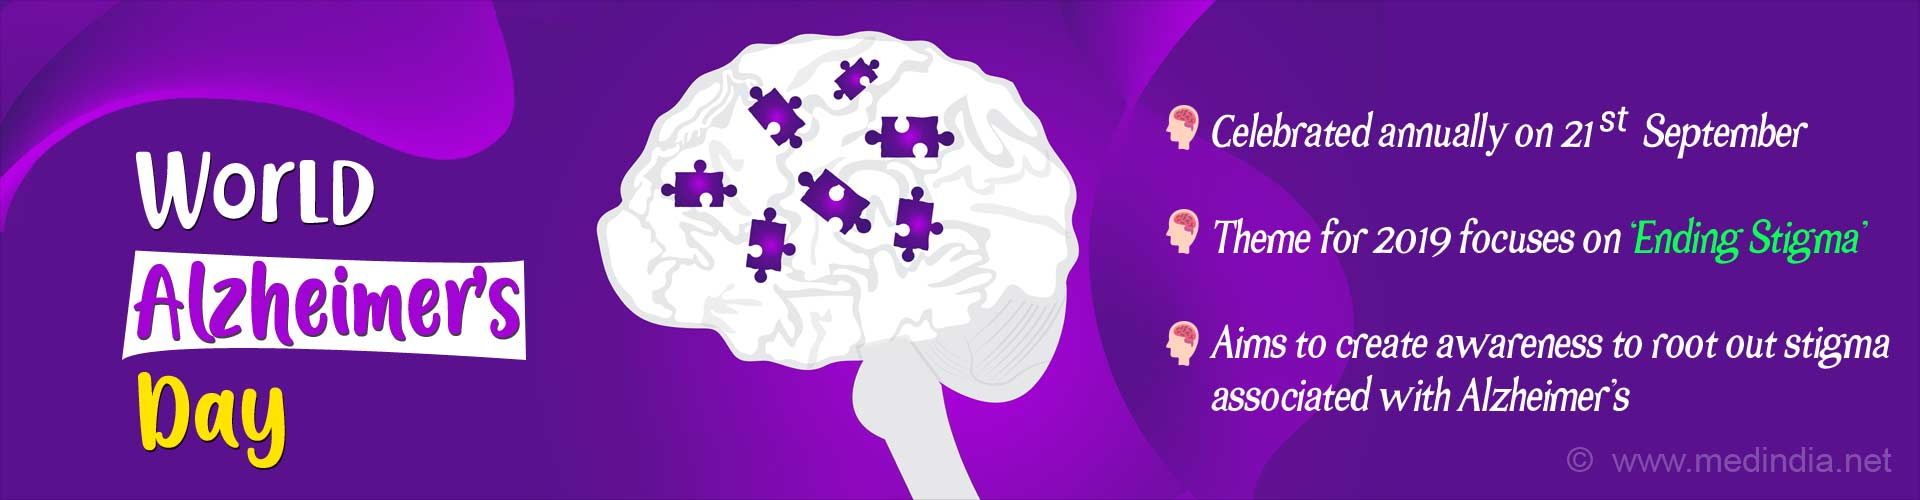 World Alzheimer's Day: Let's Not Forget the Forgetful